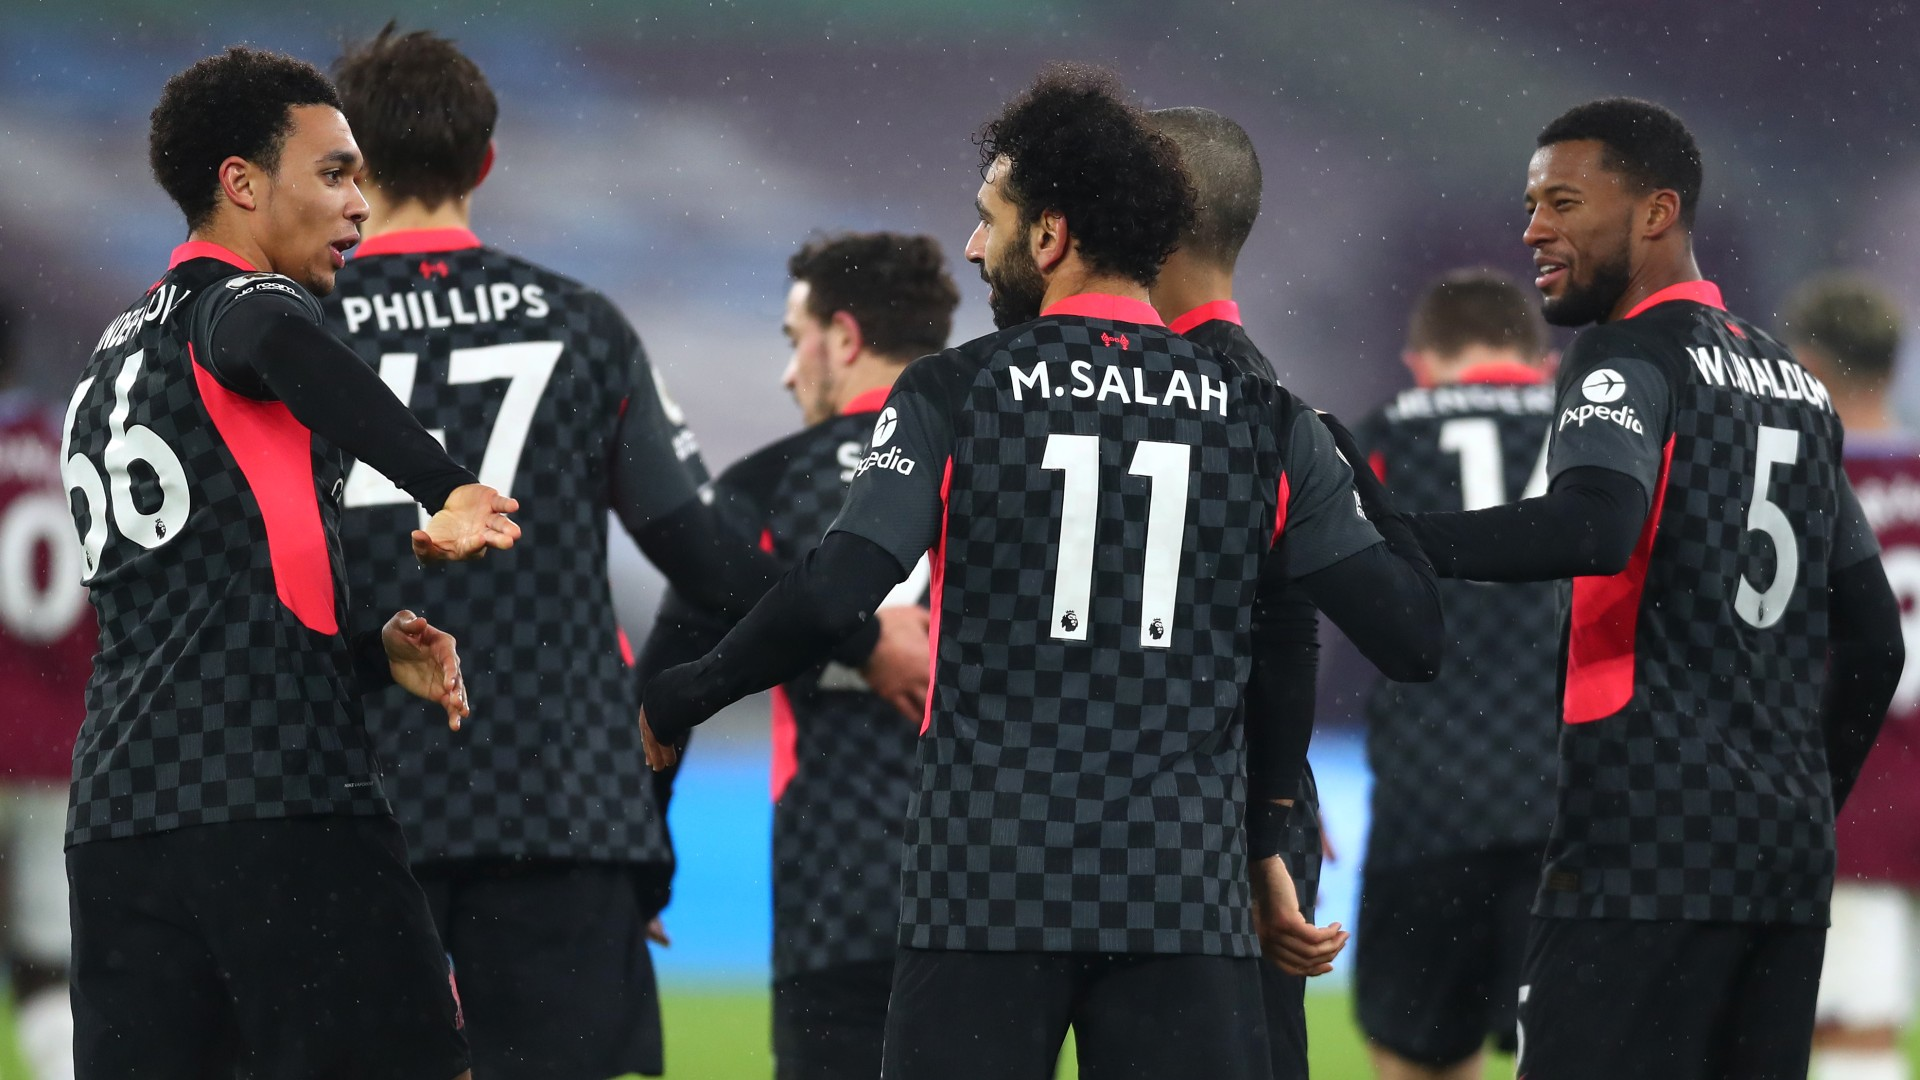 Salah 'greedy' tag shrugged off with 'phenomenal' output as Redknapp salutes Liverpool star